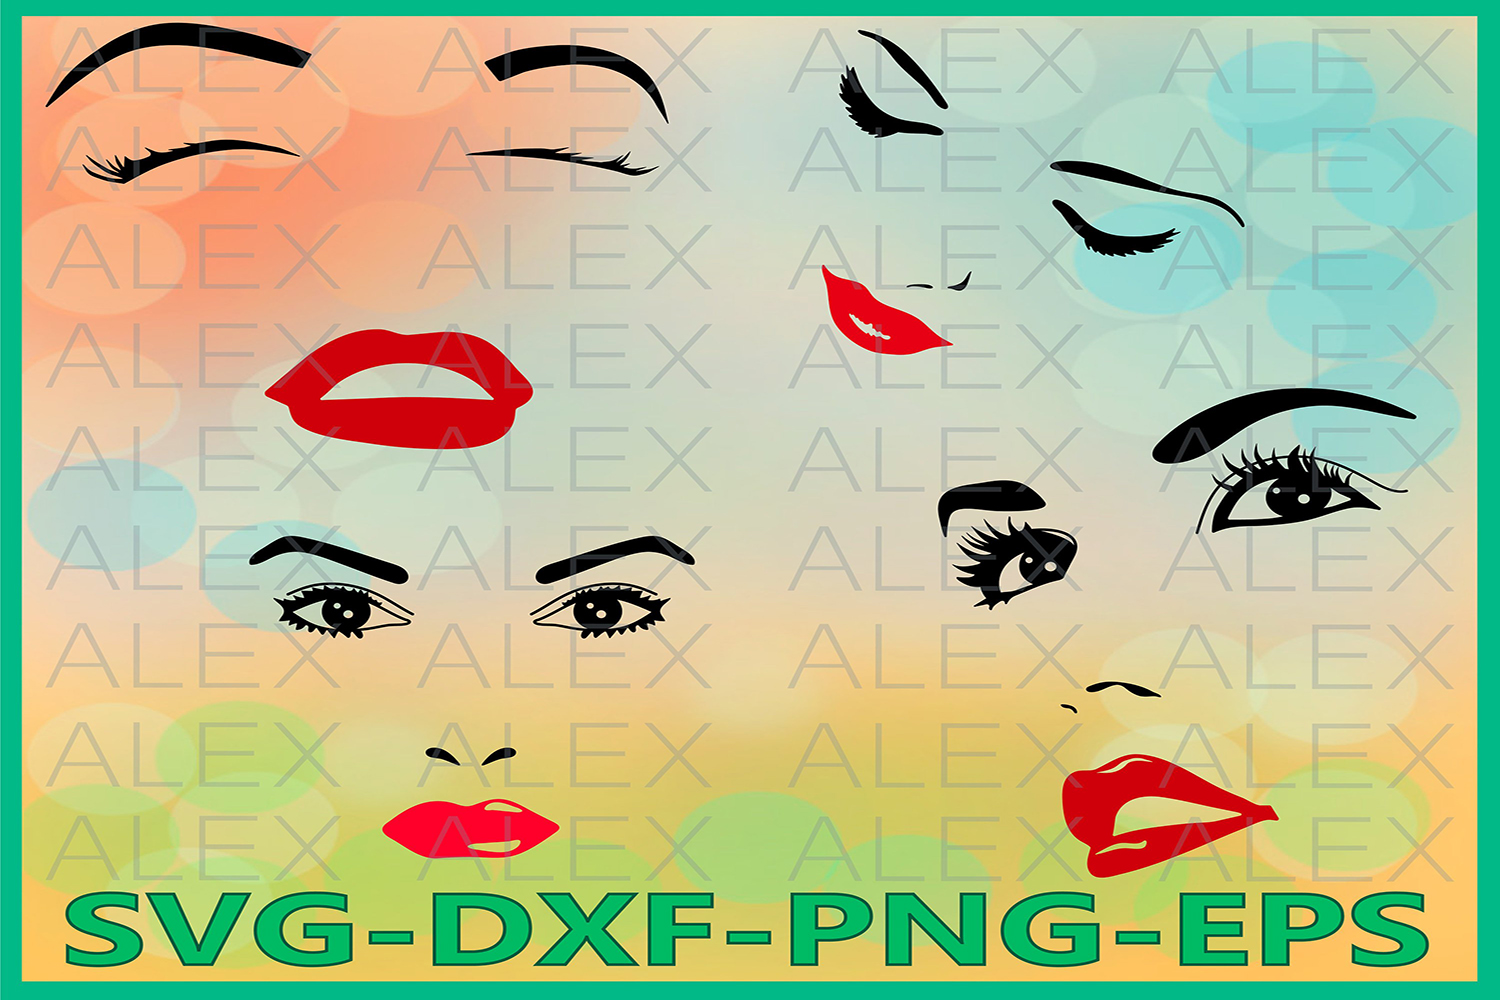 Woman face svg, Eyelashes SVG, Eyebrows Svg, Woman Eyelashes example image 1